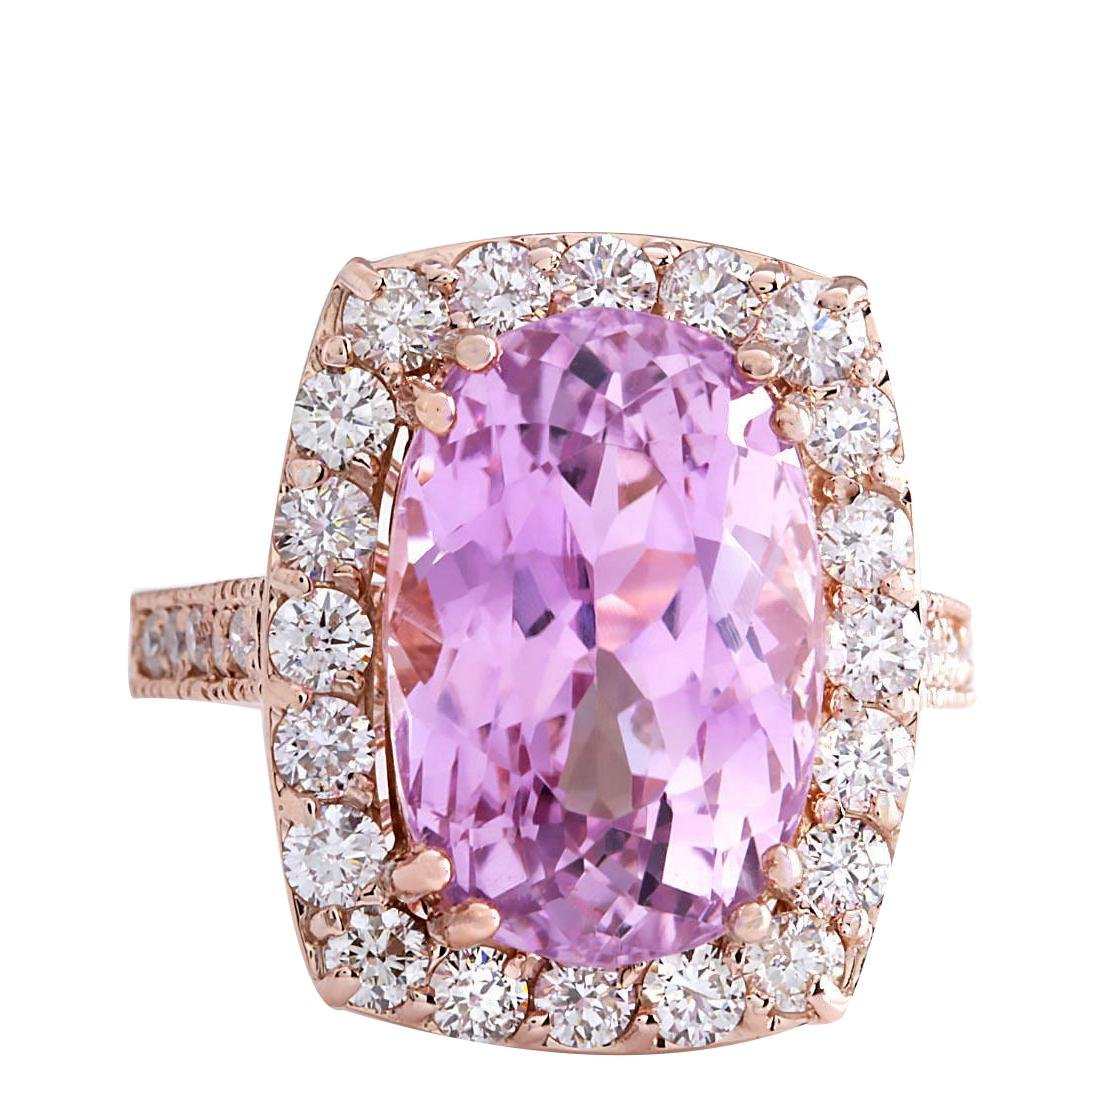 12.33CTW Natural Kunzite And Diamond Ring 18K Solid